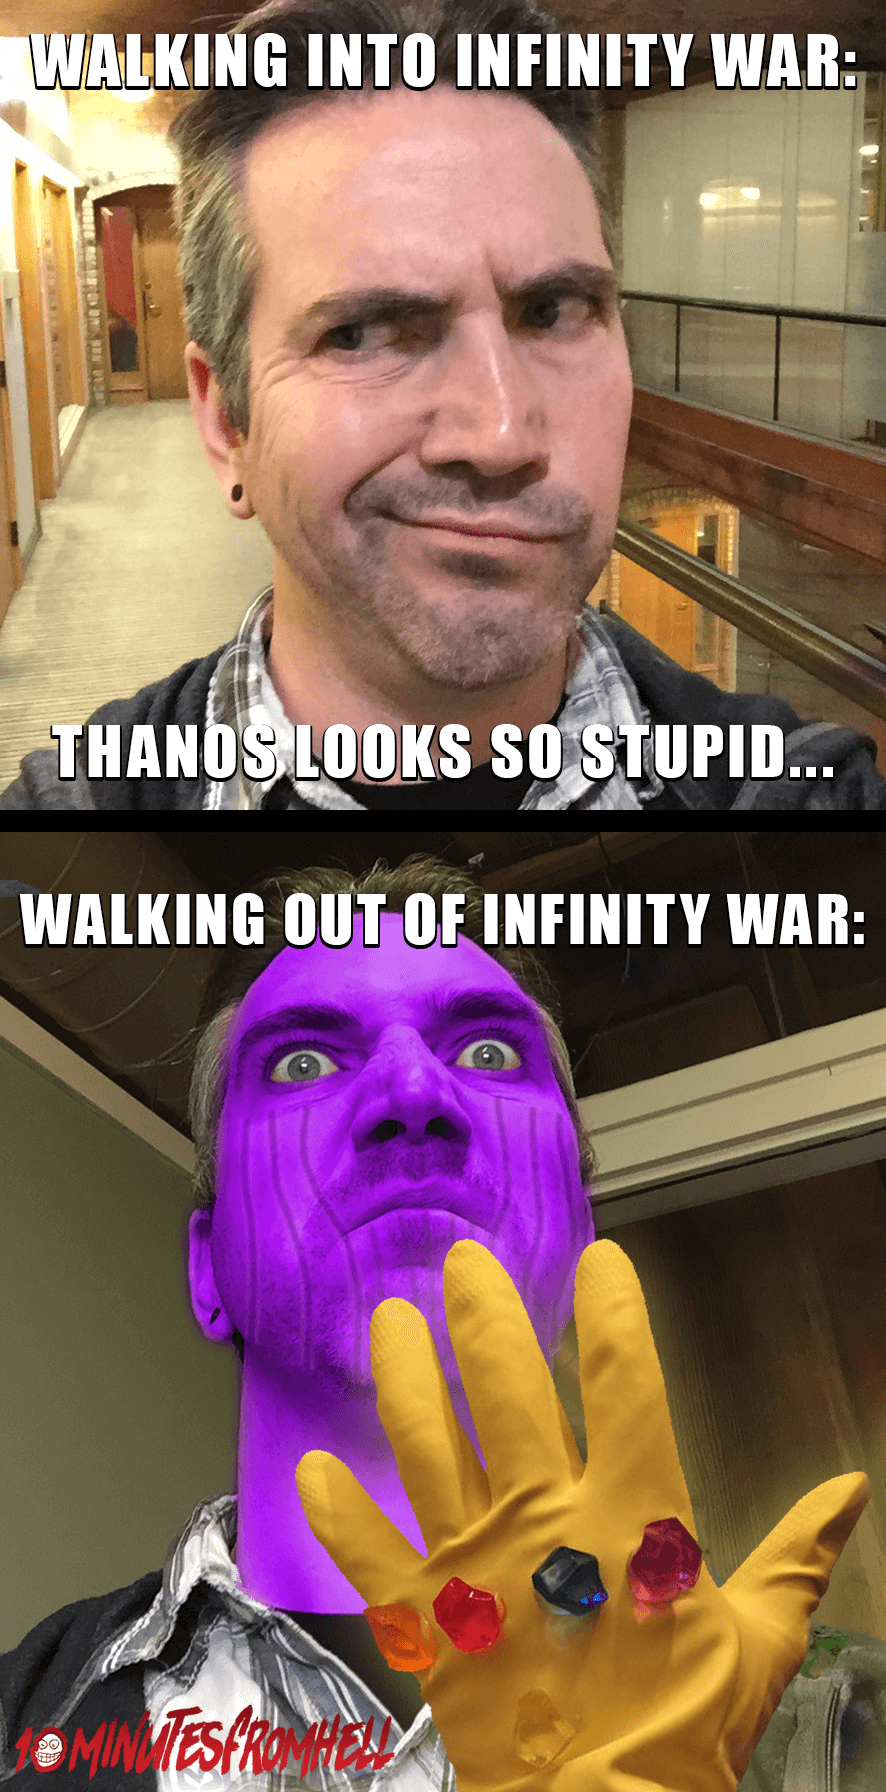 funny infinity war thanos looks lame meme